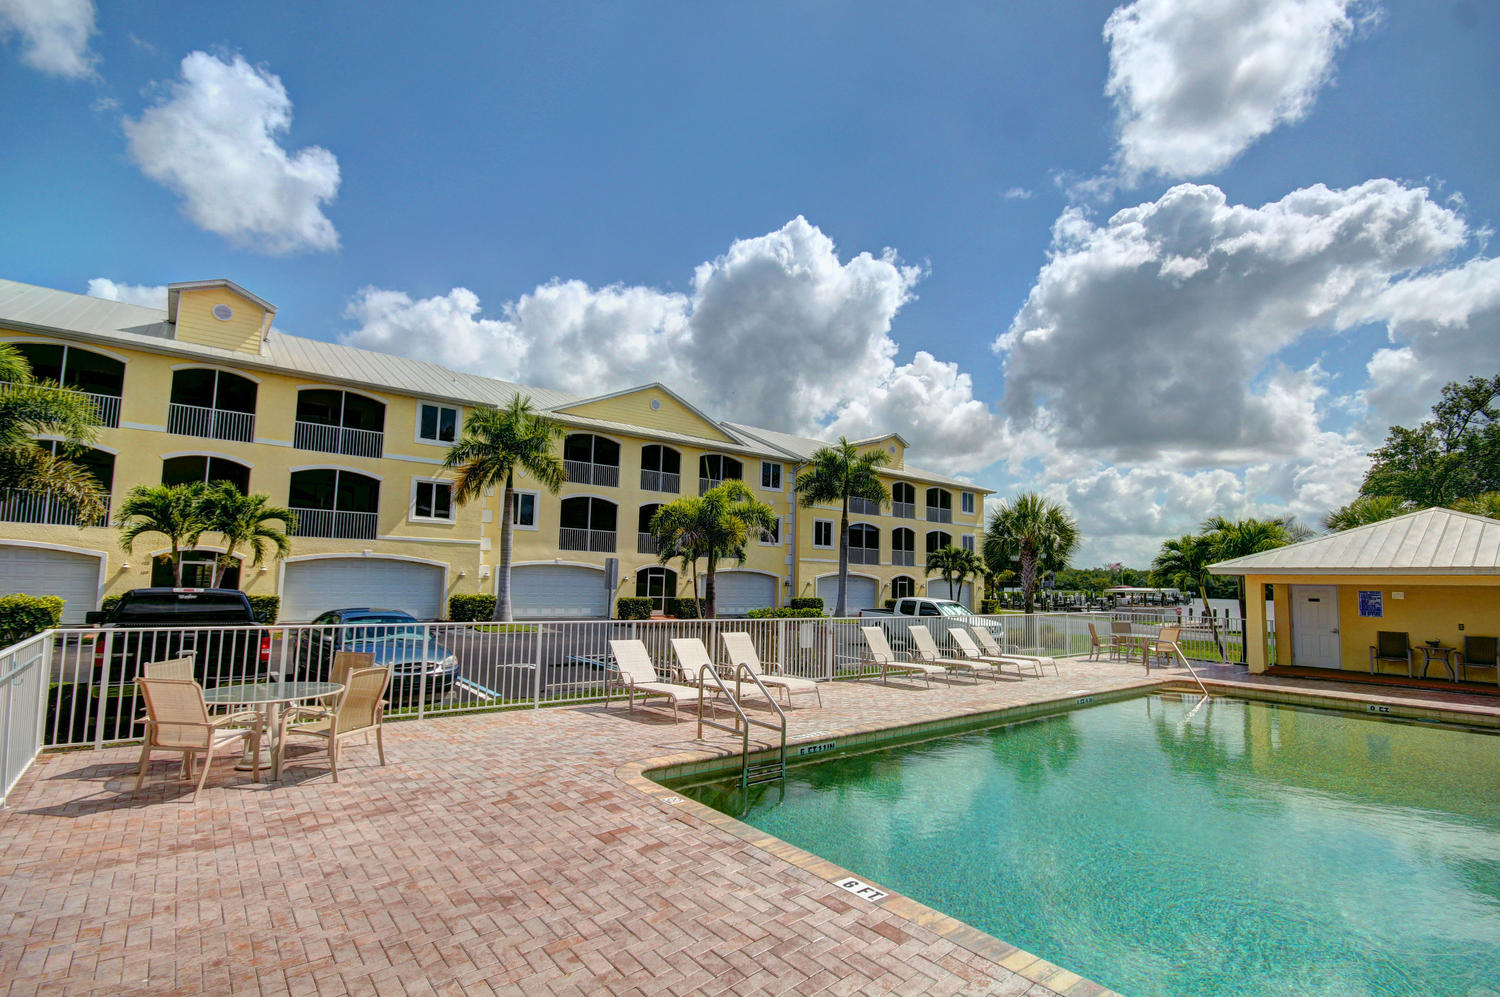 Pool view of 301 S Copeland Ave, #116, Everglades City, FL 34139